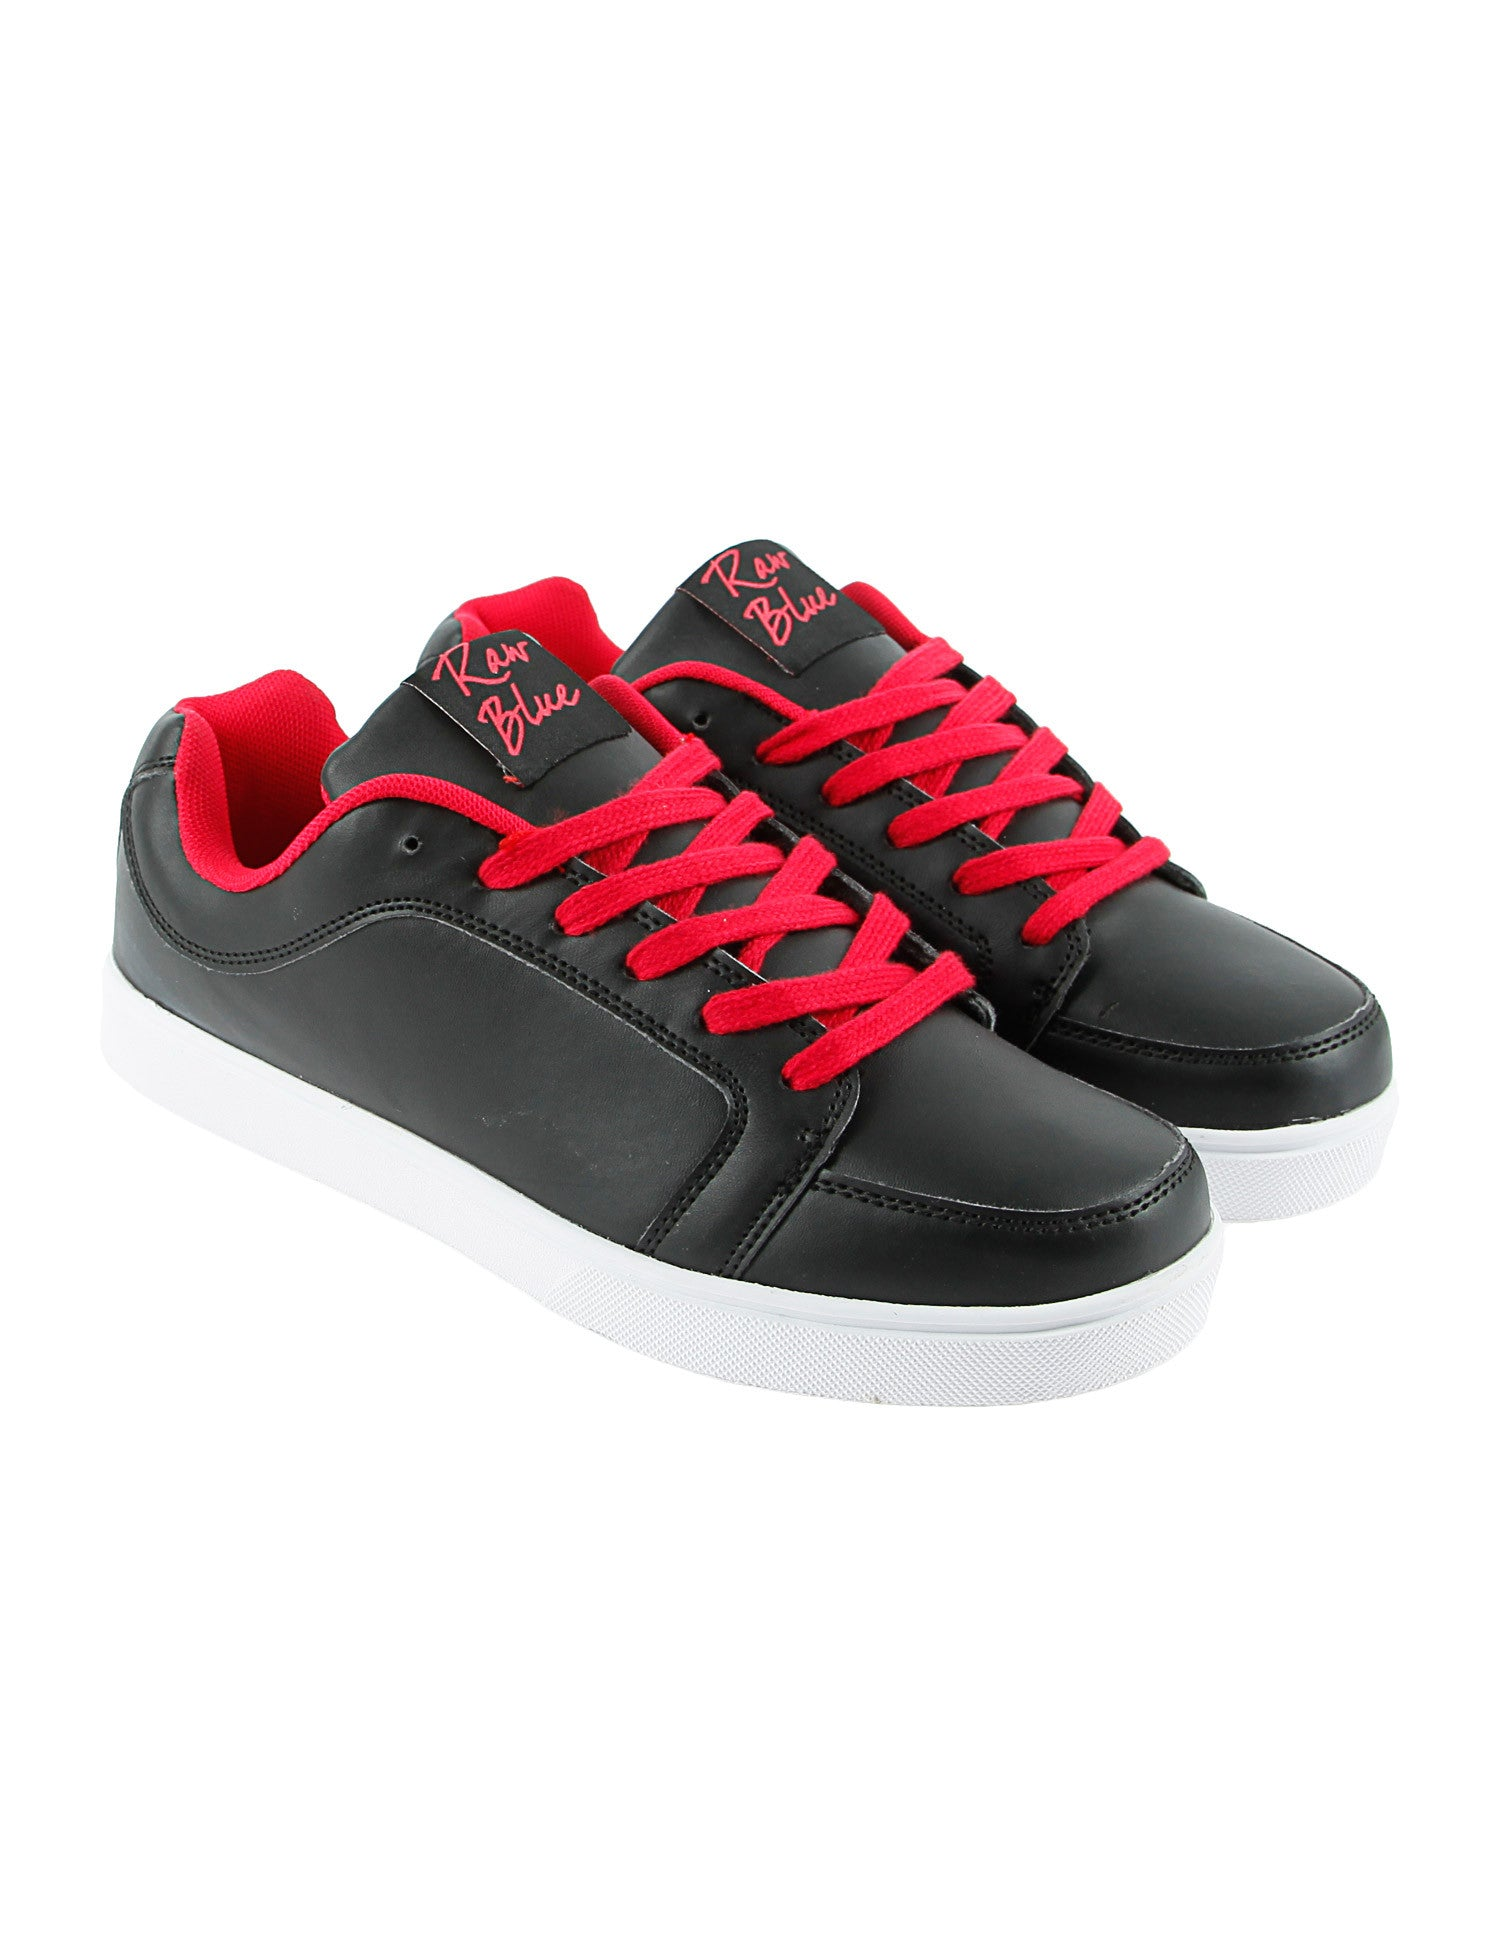 Raw Blue RBS-LOW-155F Shoes Red Black